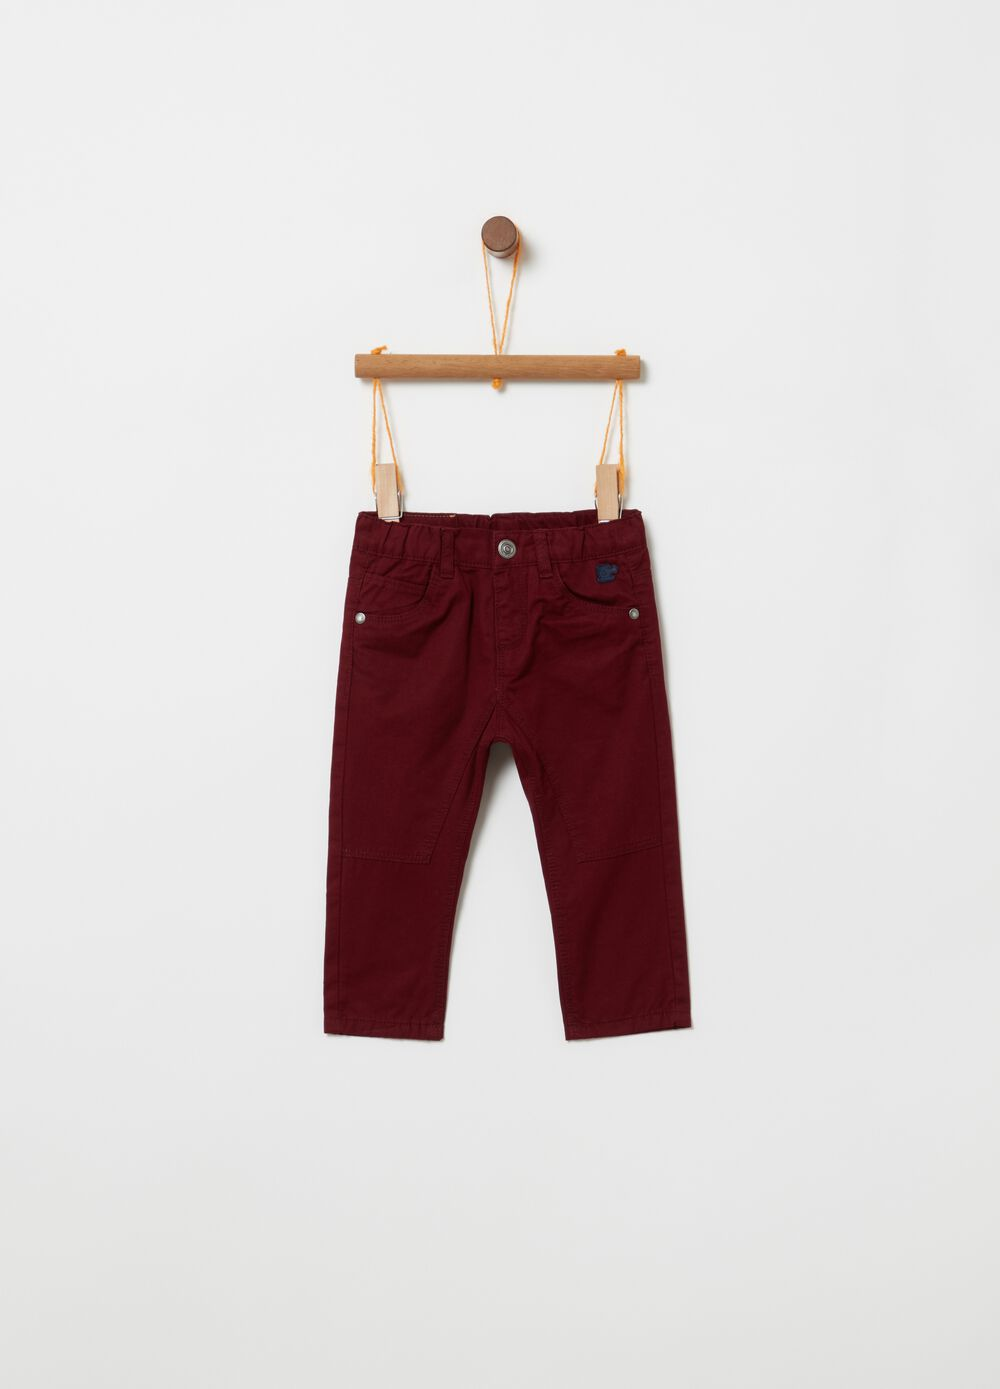 100% cotton twill trousers with jersey lining